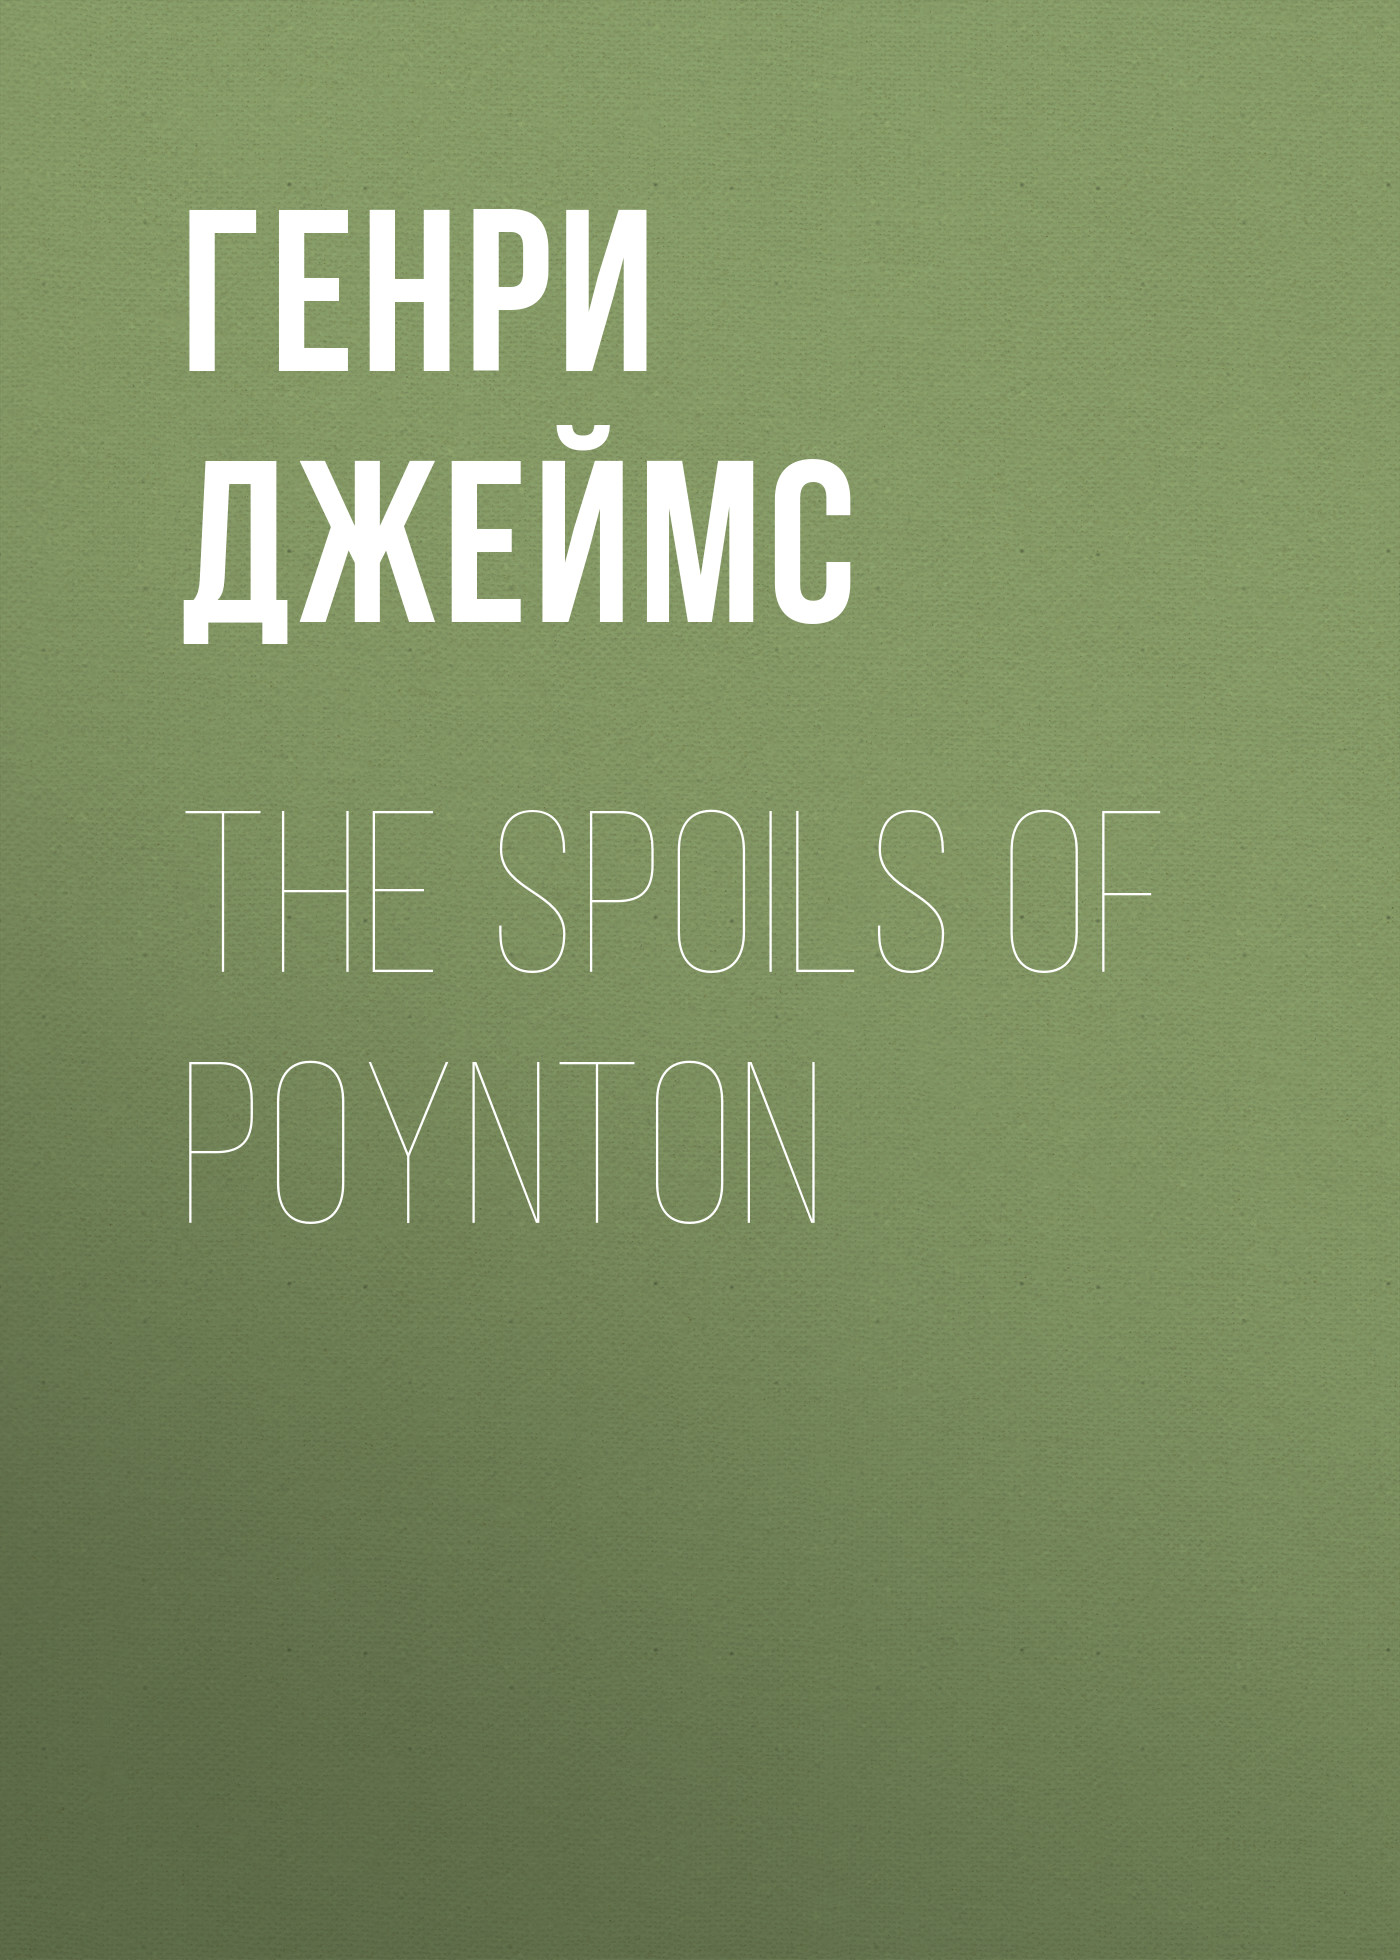 Генри Джеймс The Spoils of Poynton генри джеймс the spoils of poynton